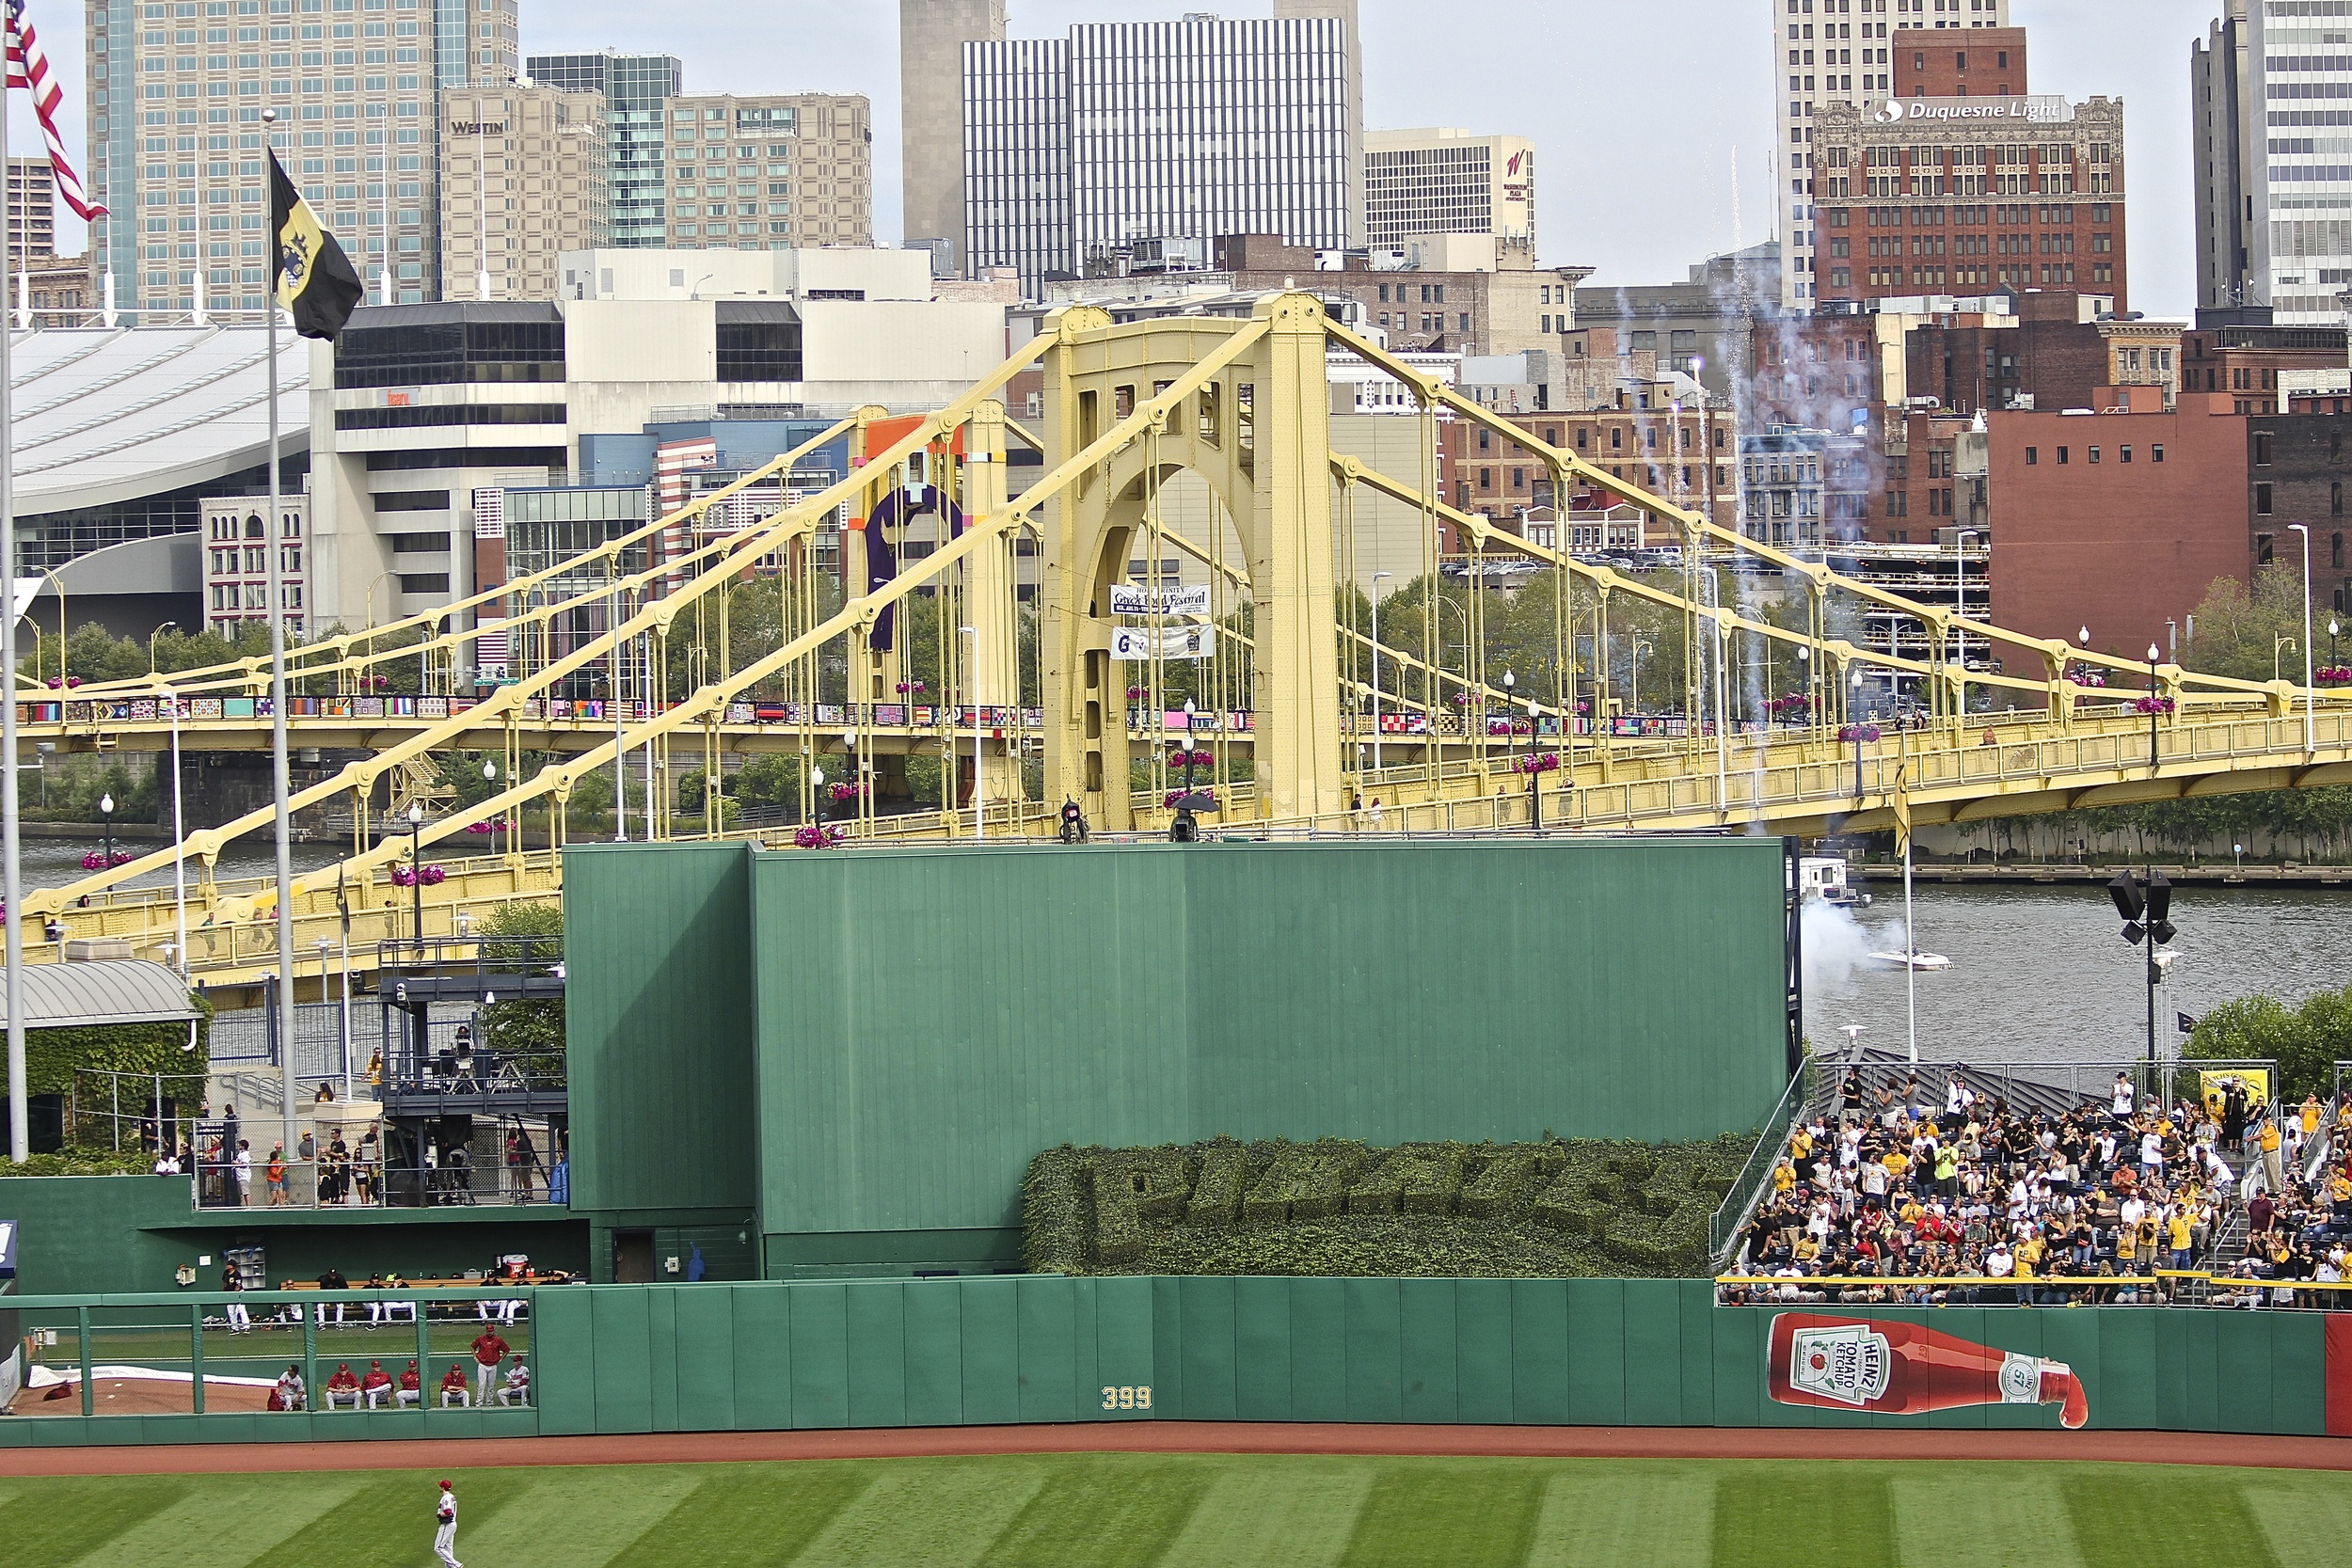 My view of the Clemente Bridge